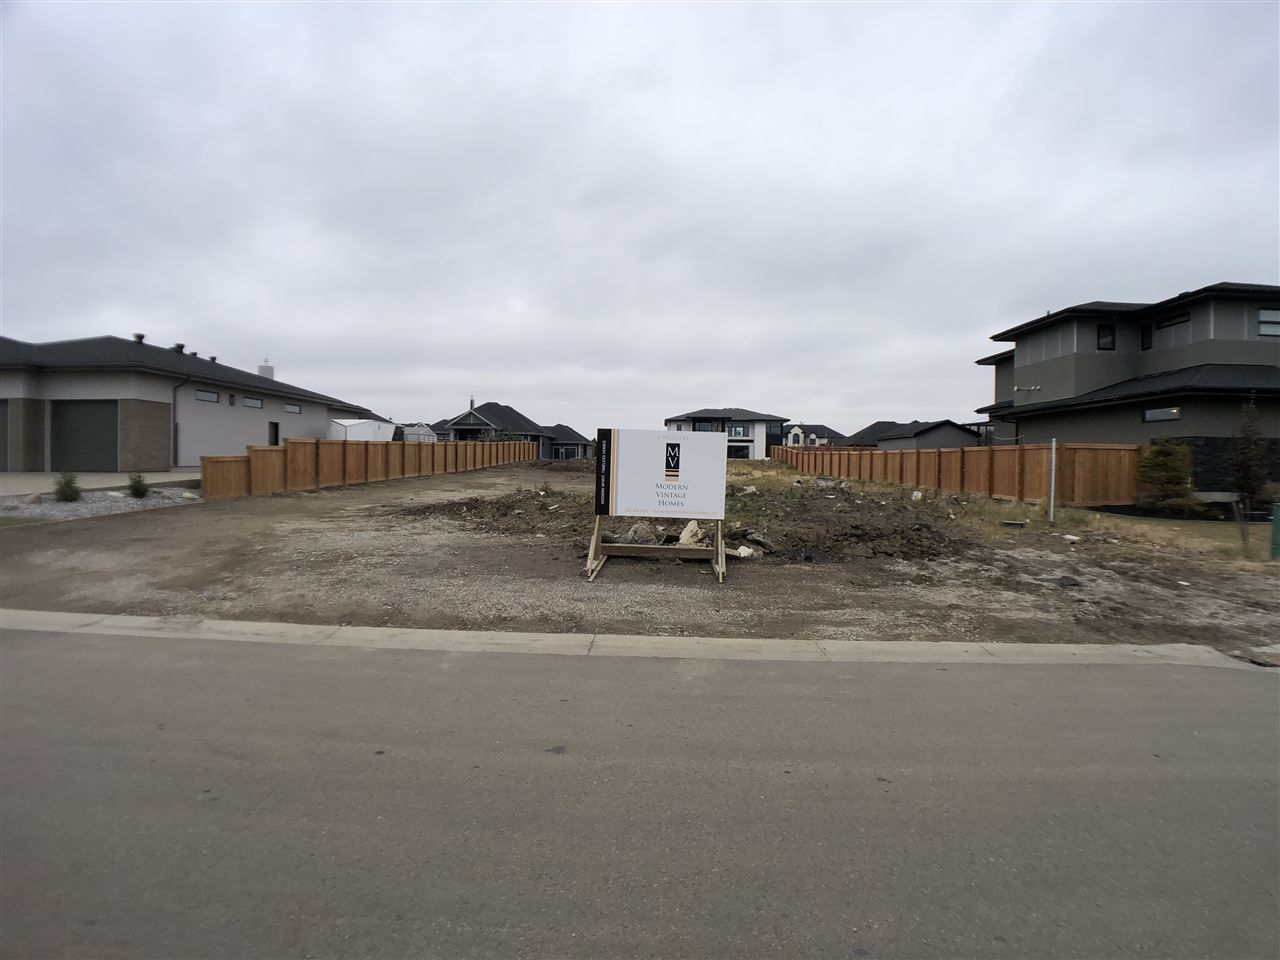 Main Photo: 238 52320 RGE RD 231: Rural Strathcona County Rural Land/Vacant Lot for sale : MLS®# E4220541